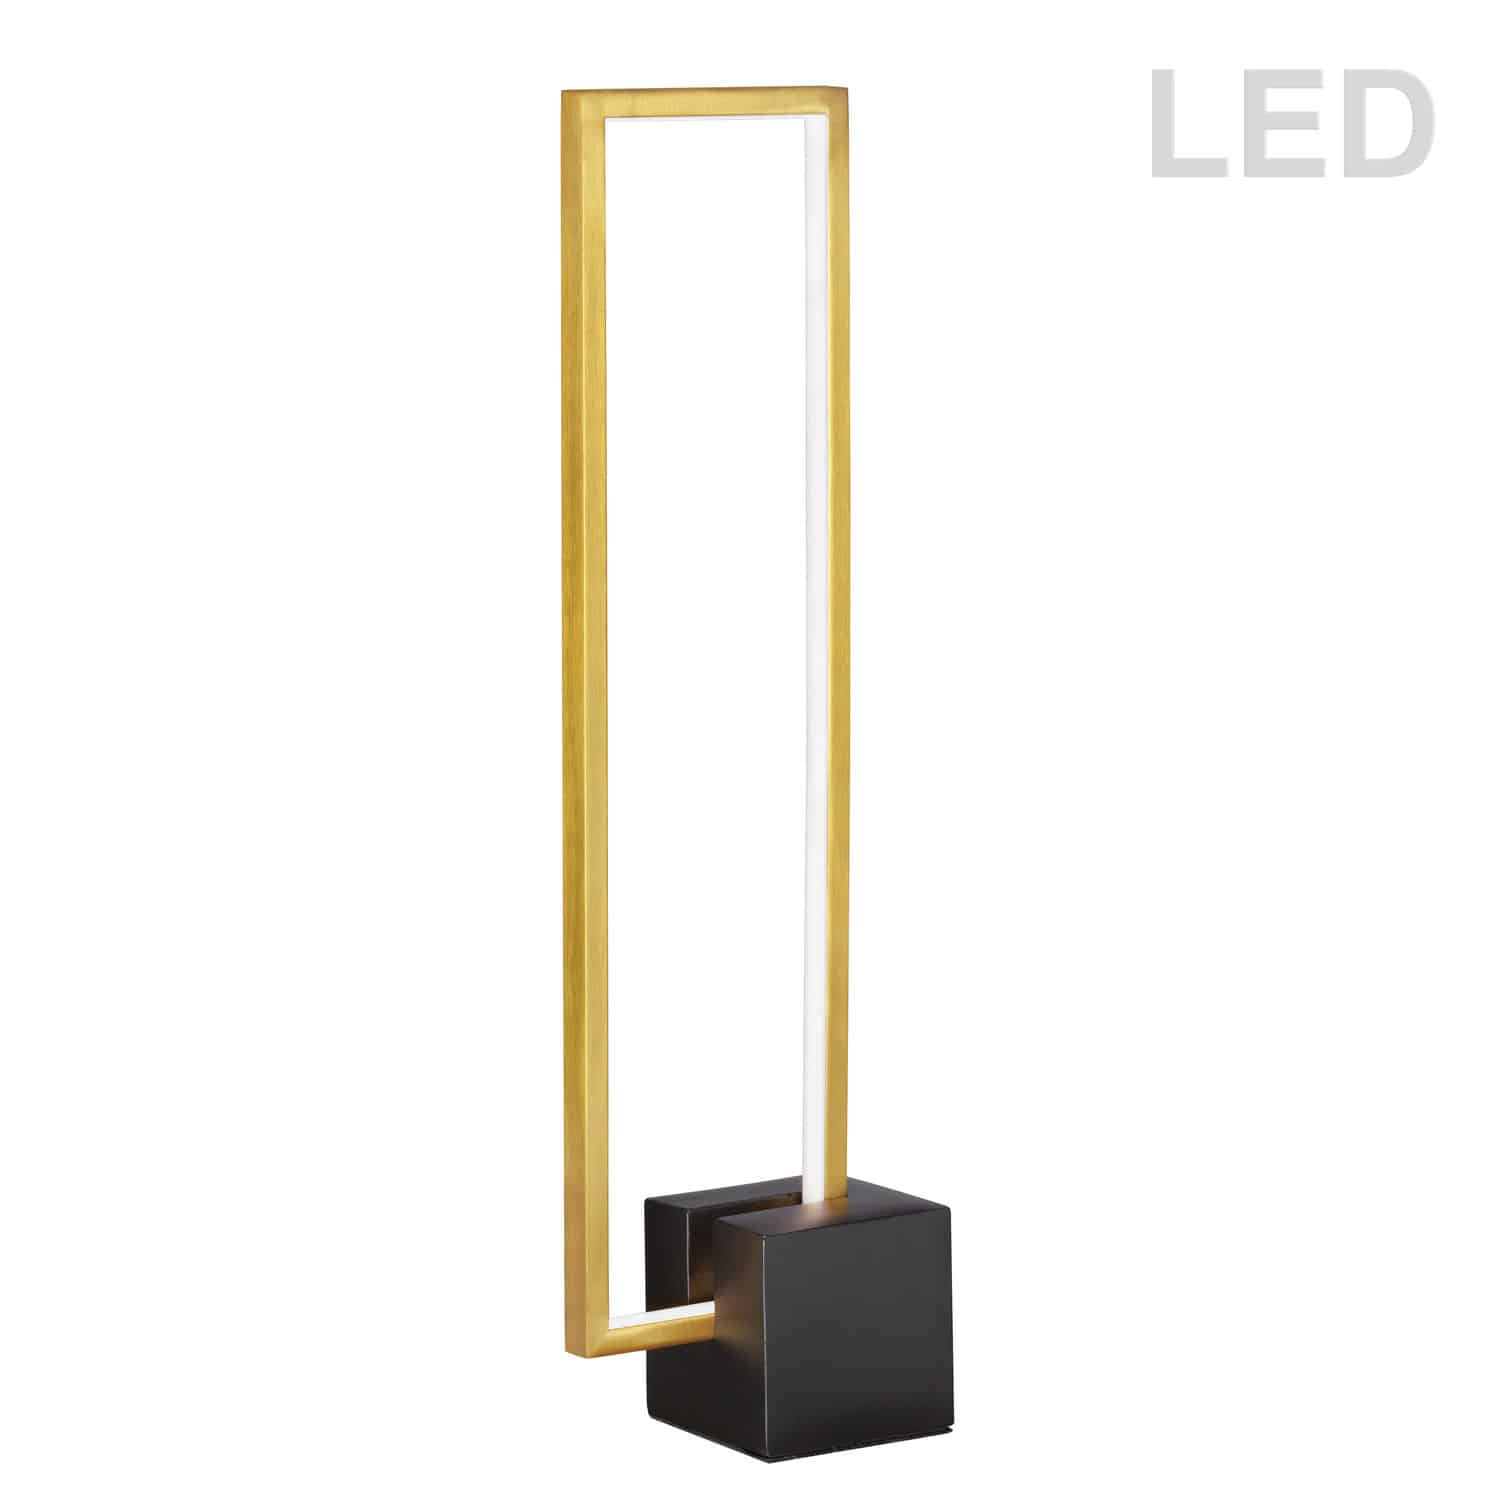 21.6W LED Table Lamp, Aged Brass with Matte Black Concrete Base